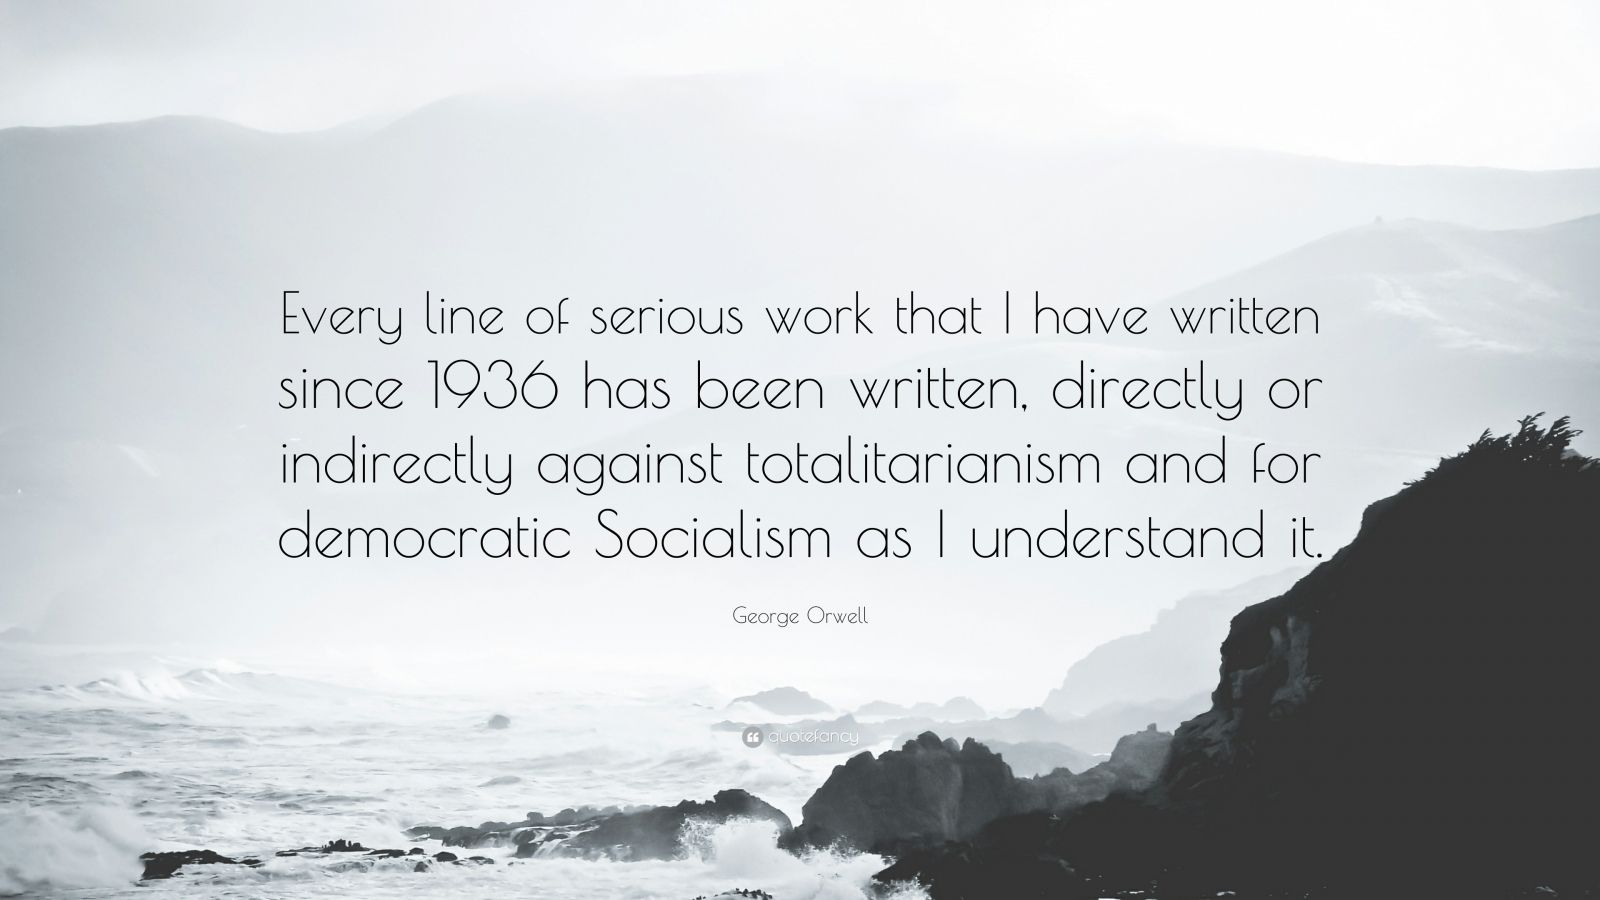 """George Orwell Quote: """"Every line of serious work that I have written since 1936 has been written, directly or indirectly against totalitarianism and for democratic Socialism as I understand it."""""""